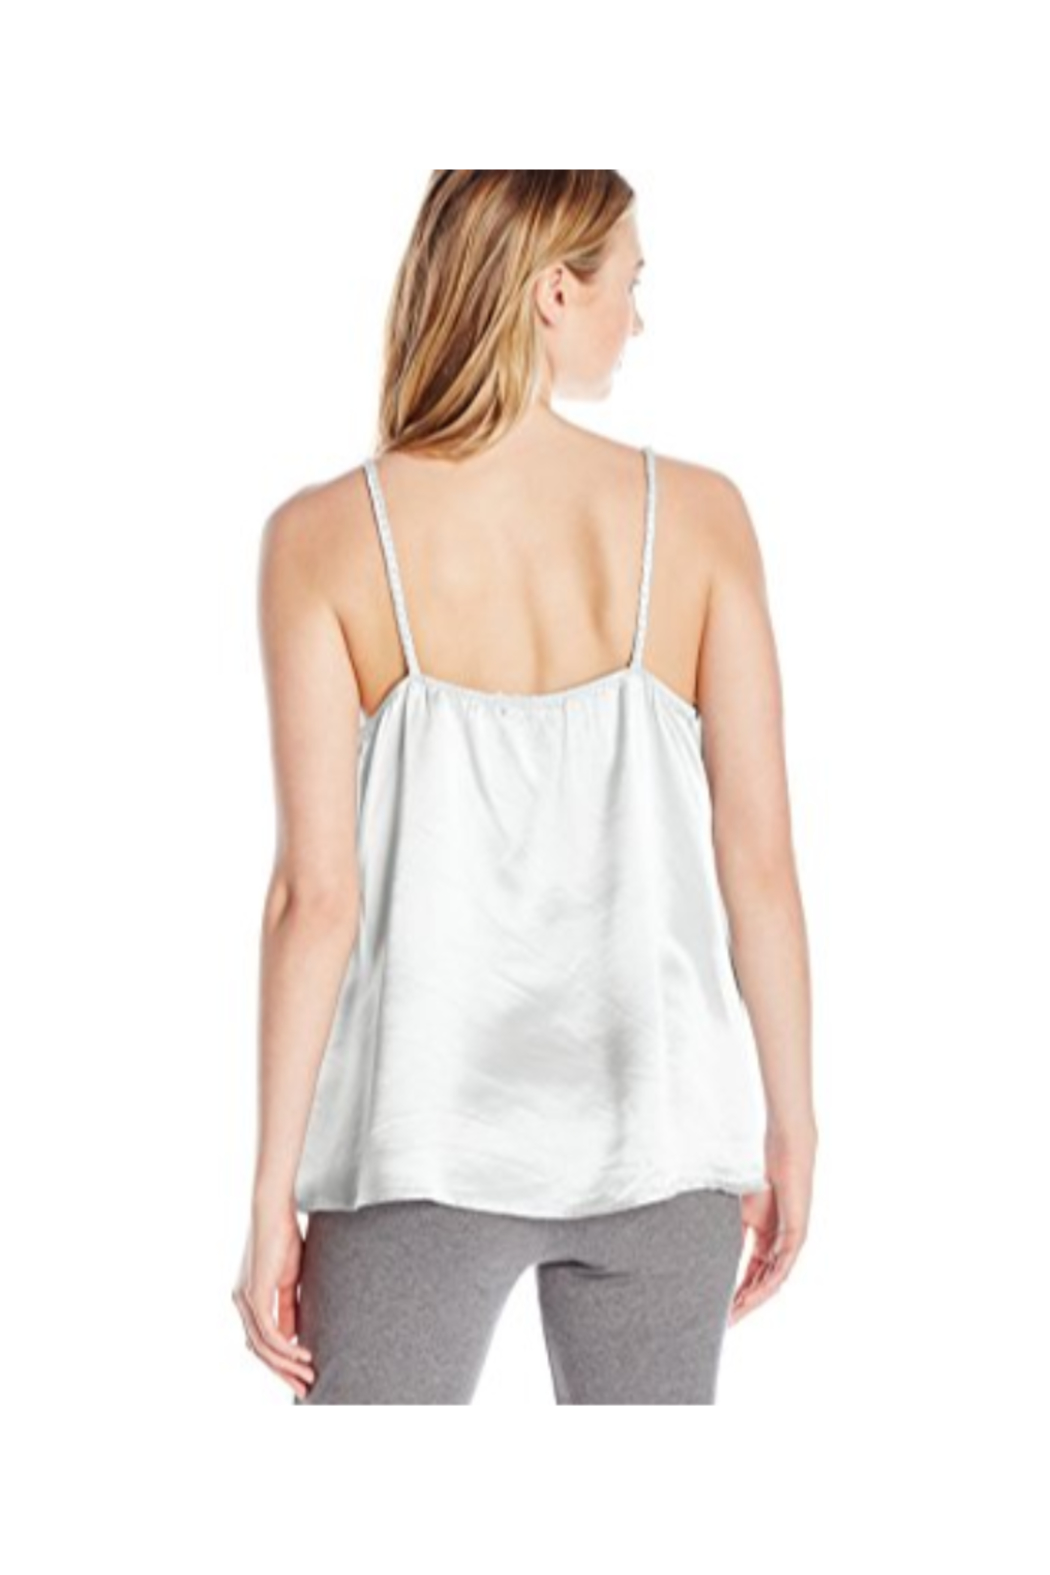 The Birds Nest DAISY CAMI W/ BRAIDED STRAPS - Front Full Image